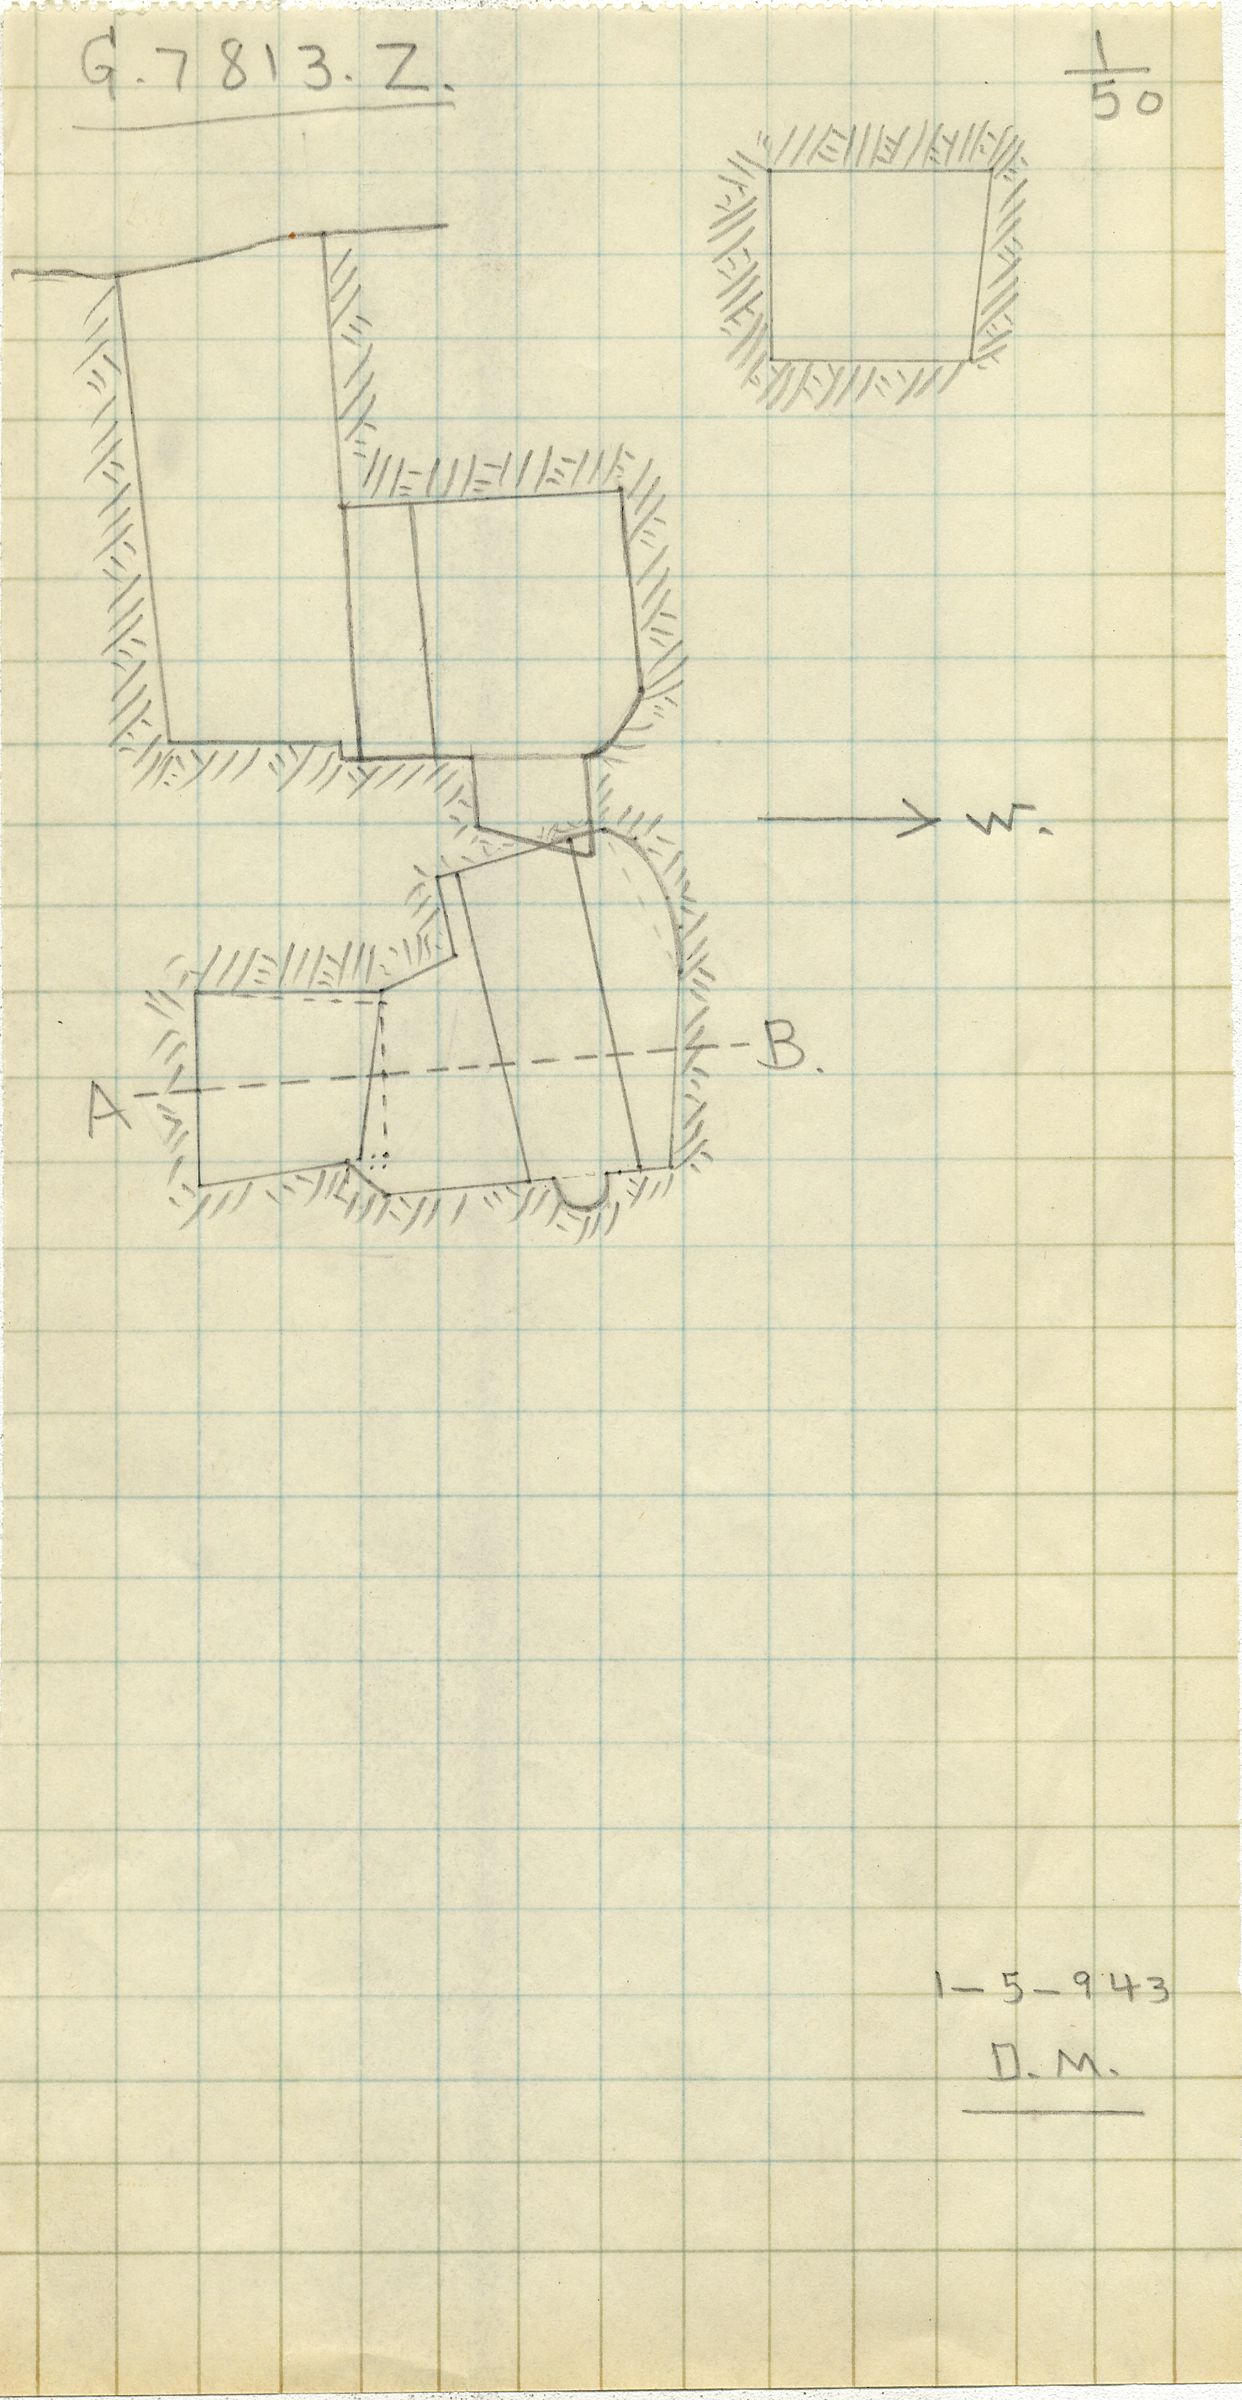 Maps and plans: G 7813, Shaft Z